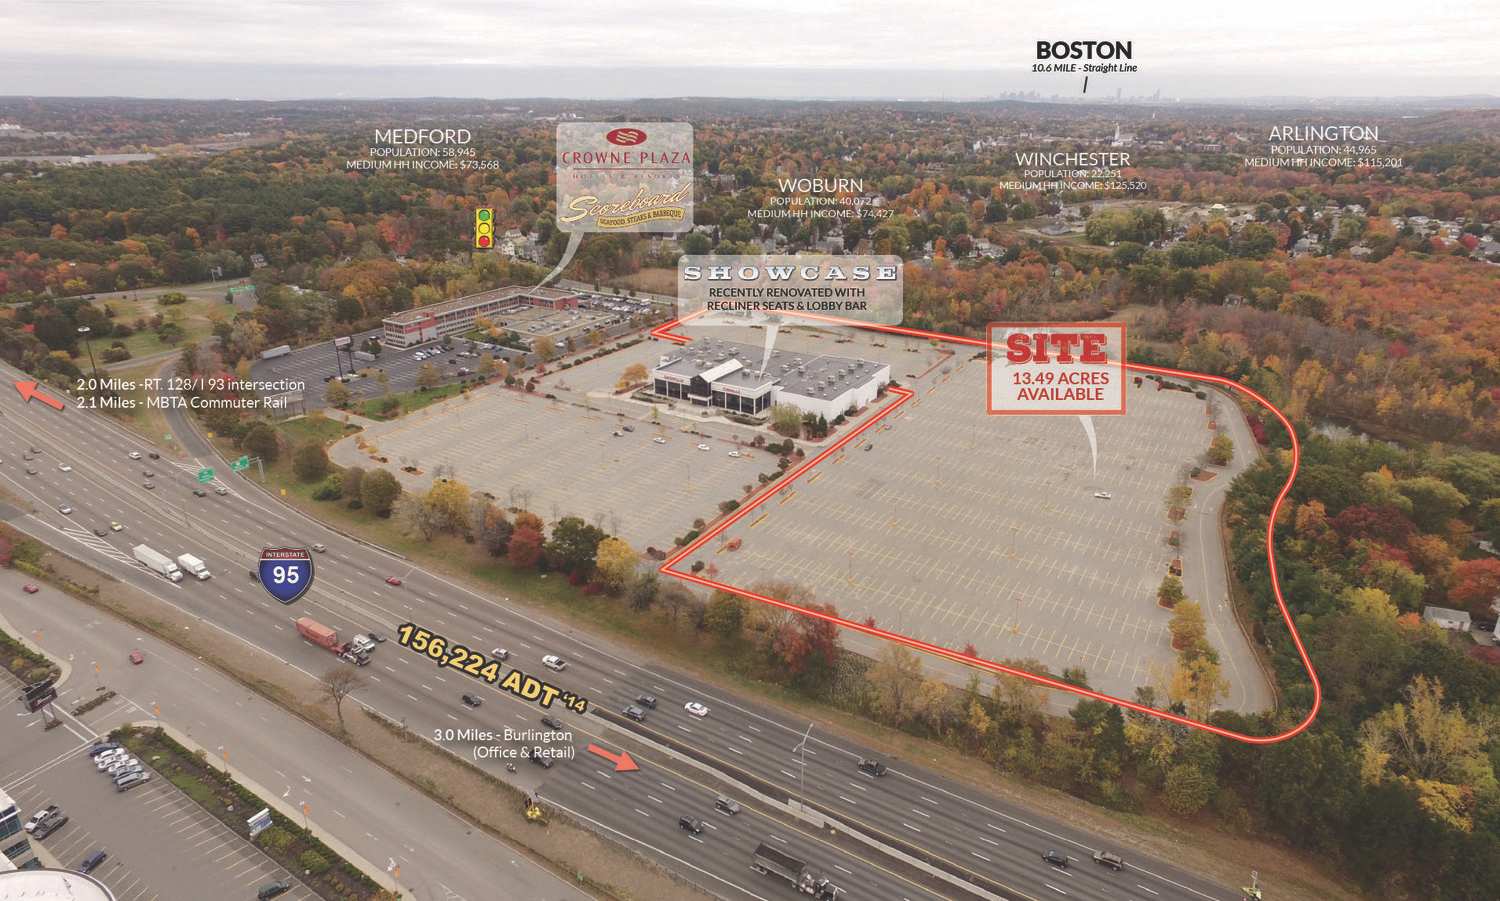 Location: Woburn, Massachusetts Size: +/-13.49 acre development